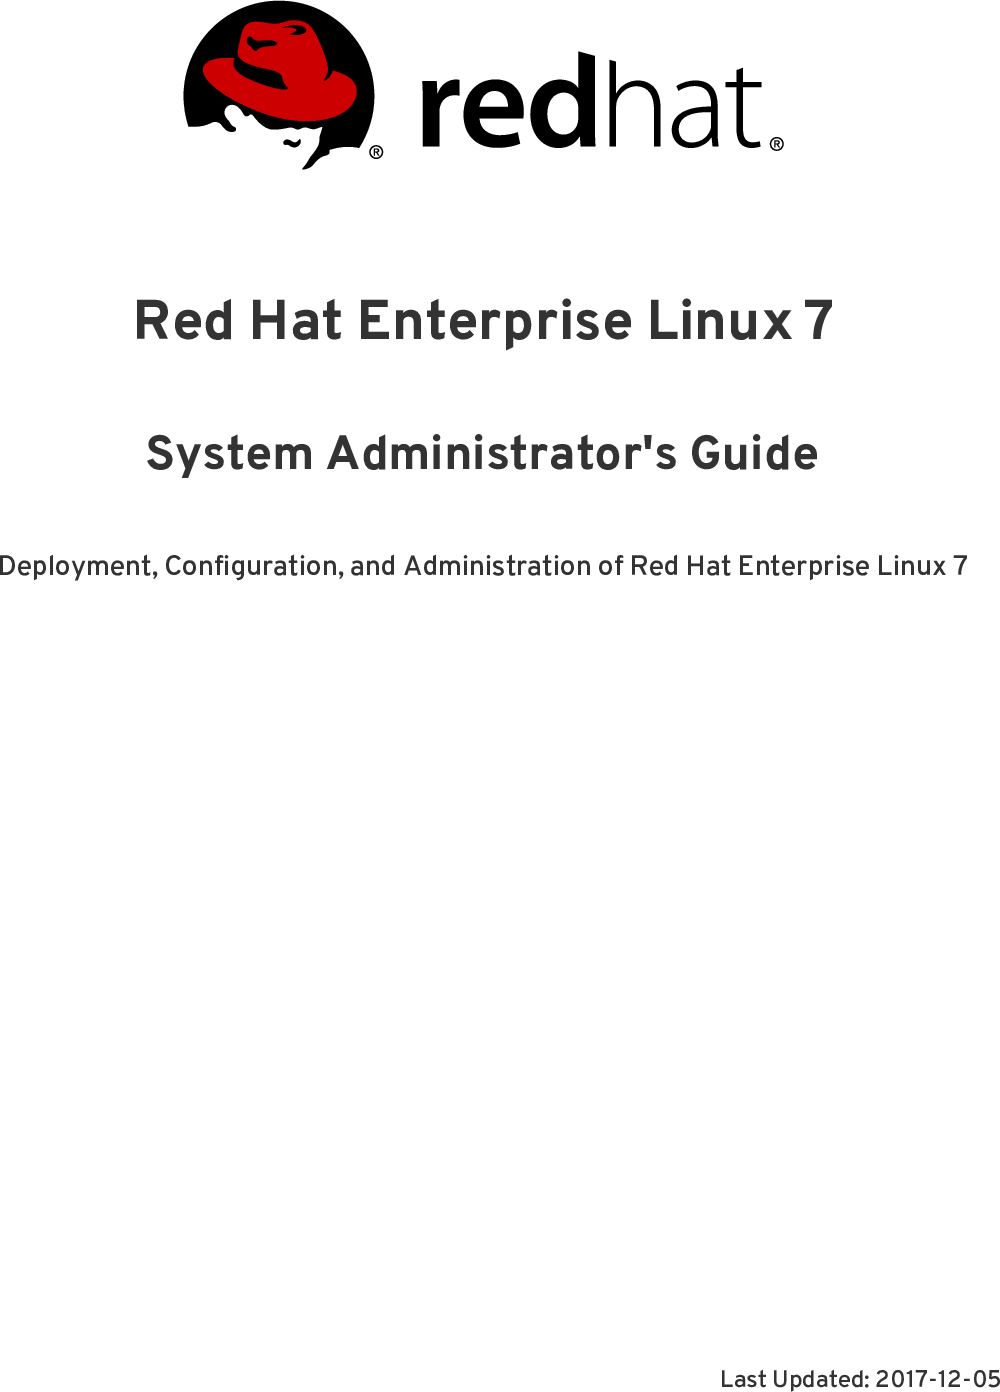 System Administrator's Guide Red Hat Enterprise Linux 7